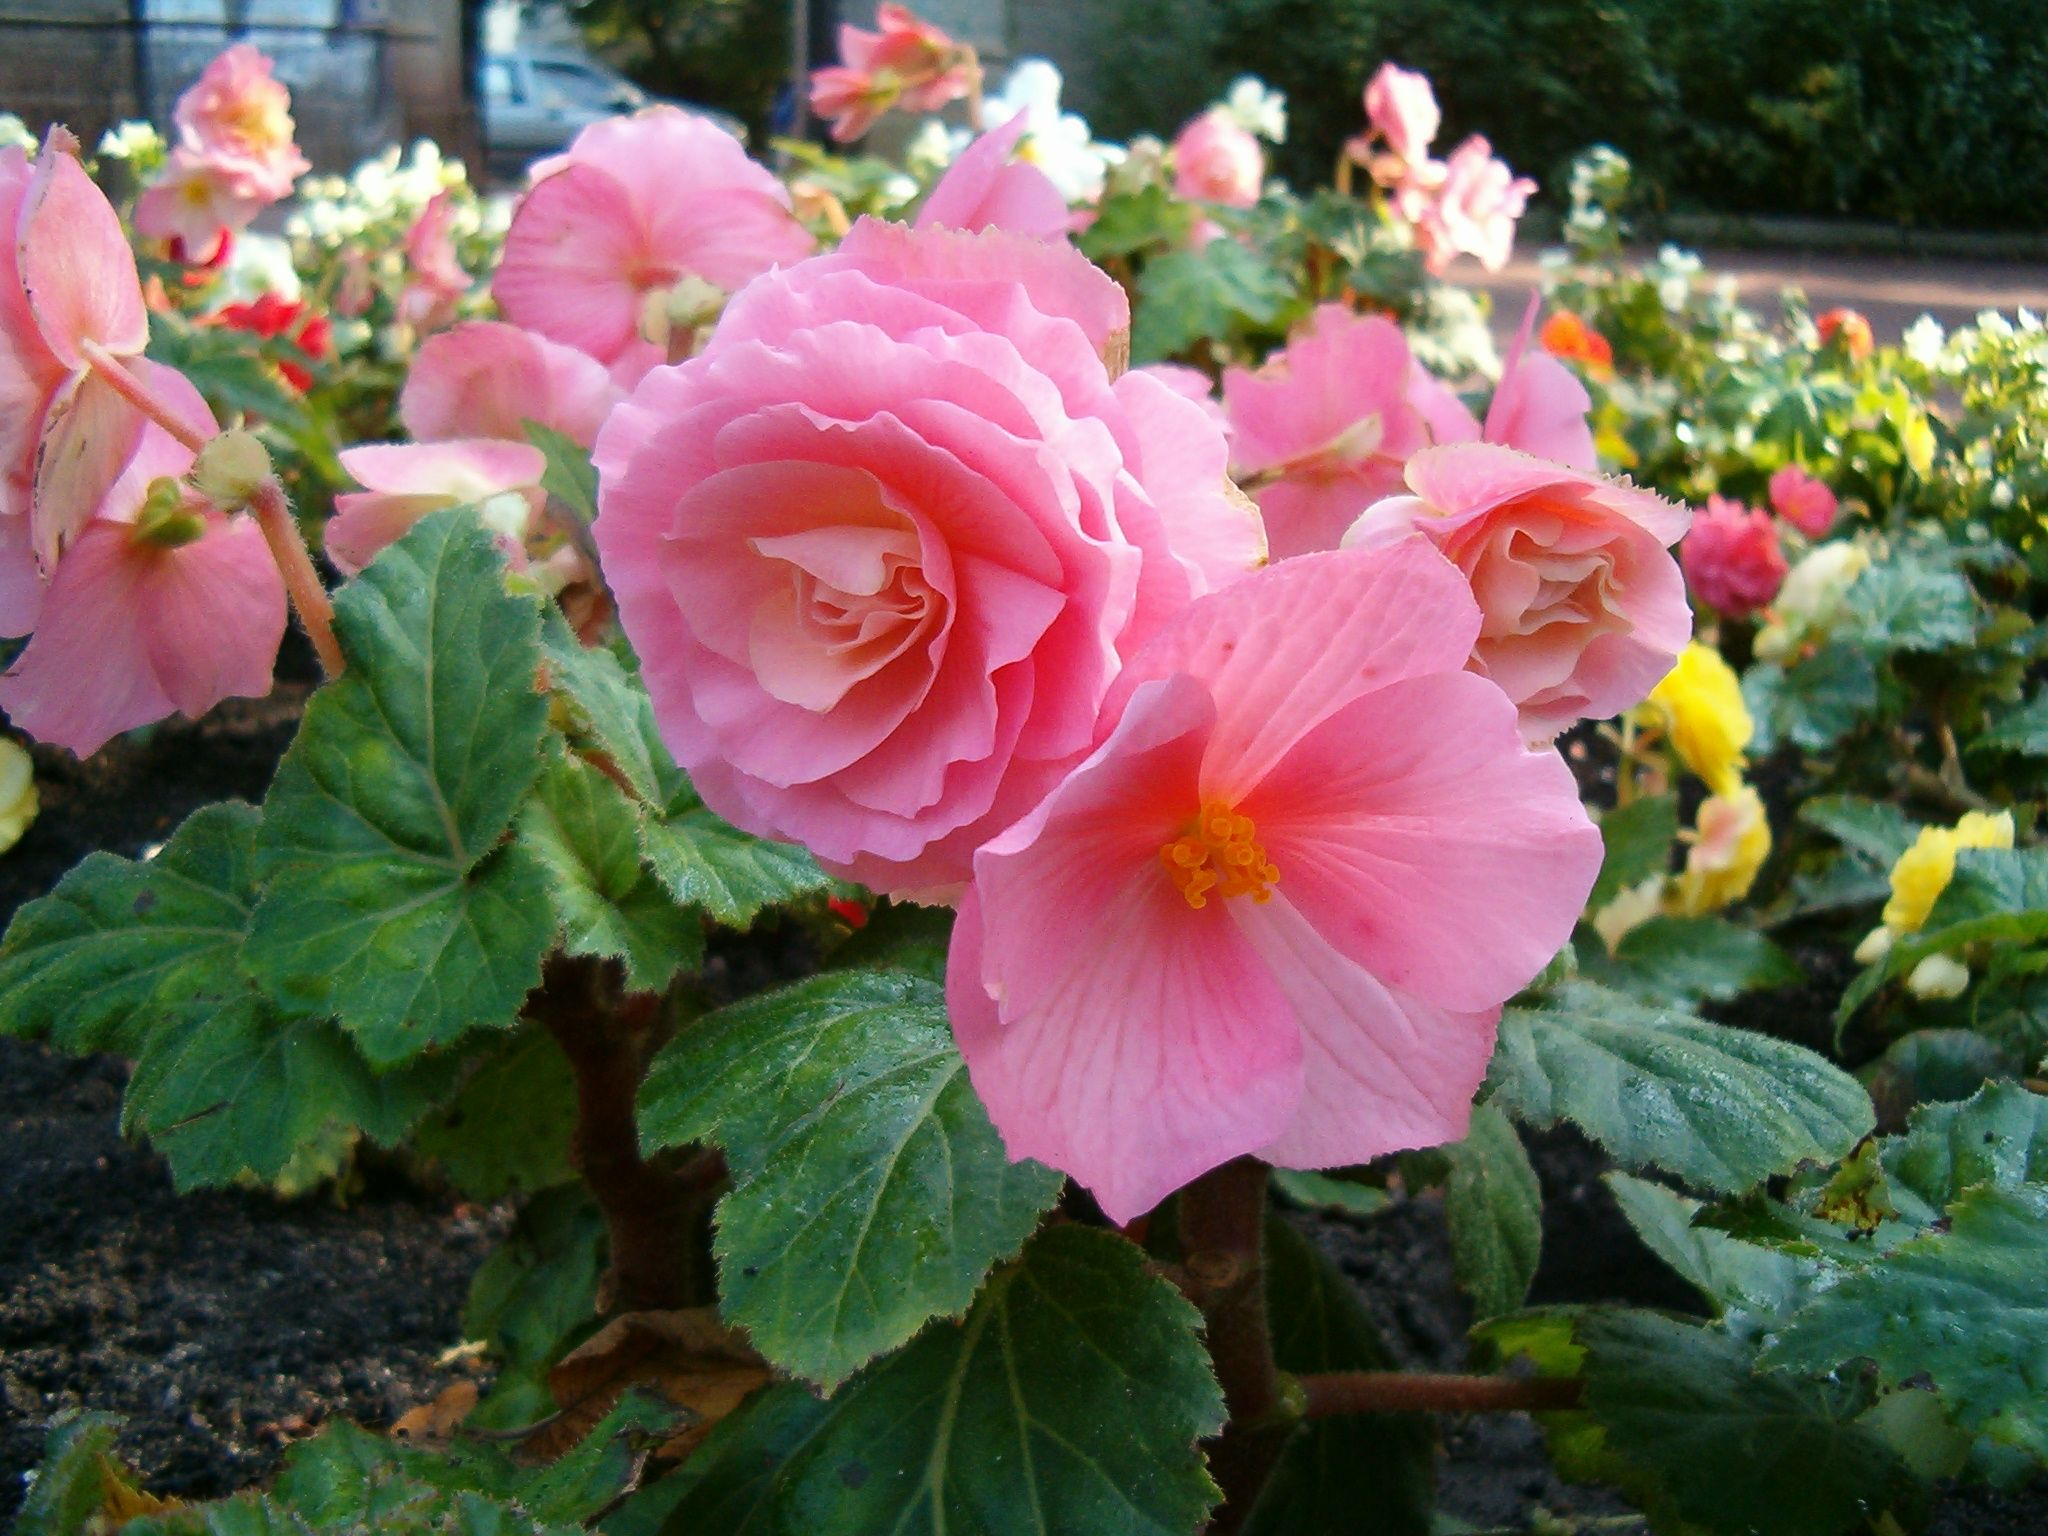 Pink Tuber Begonia Hybrid How To Grow Https Www Houseplant411 Com Houseplant Begonia Plant How To Grow Care Flower Pots Indoor Flowering Plants Plants